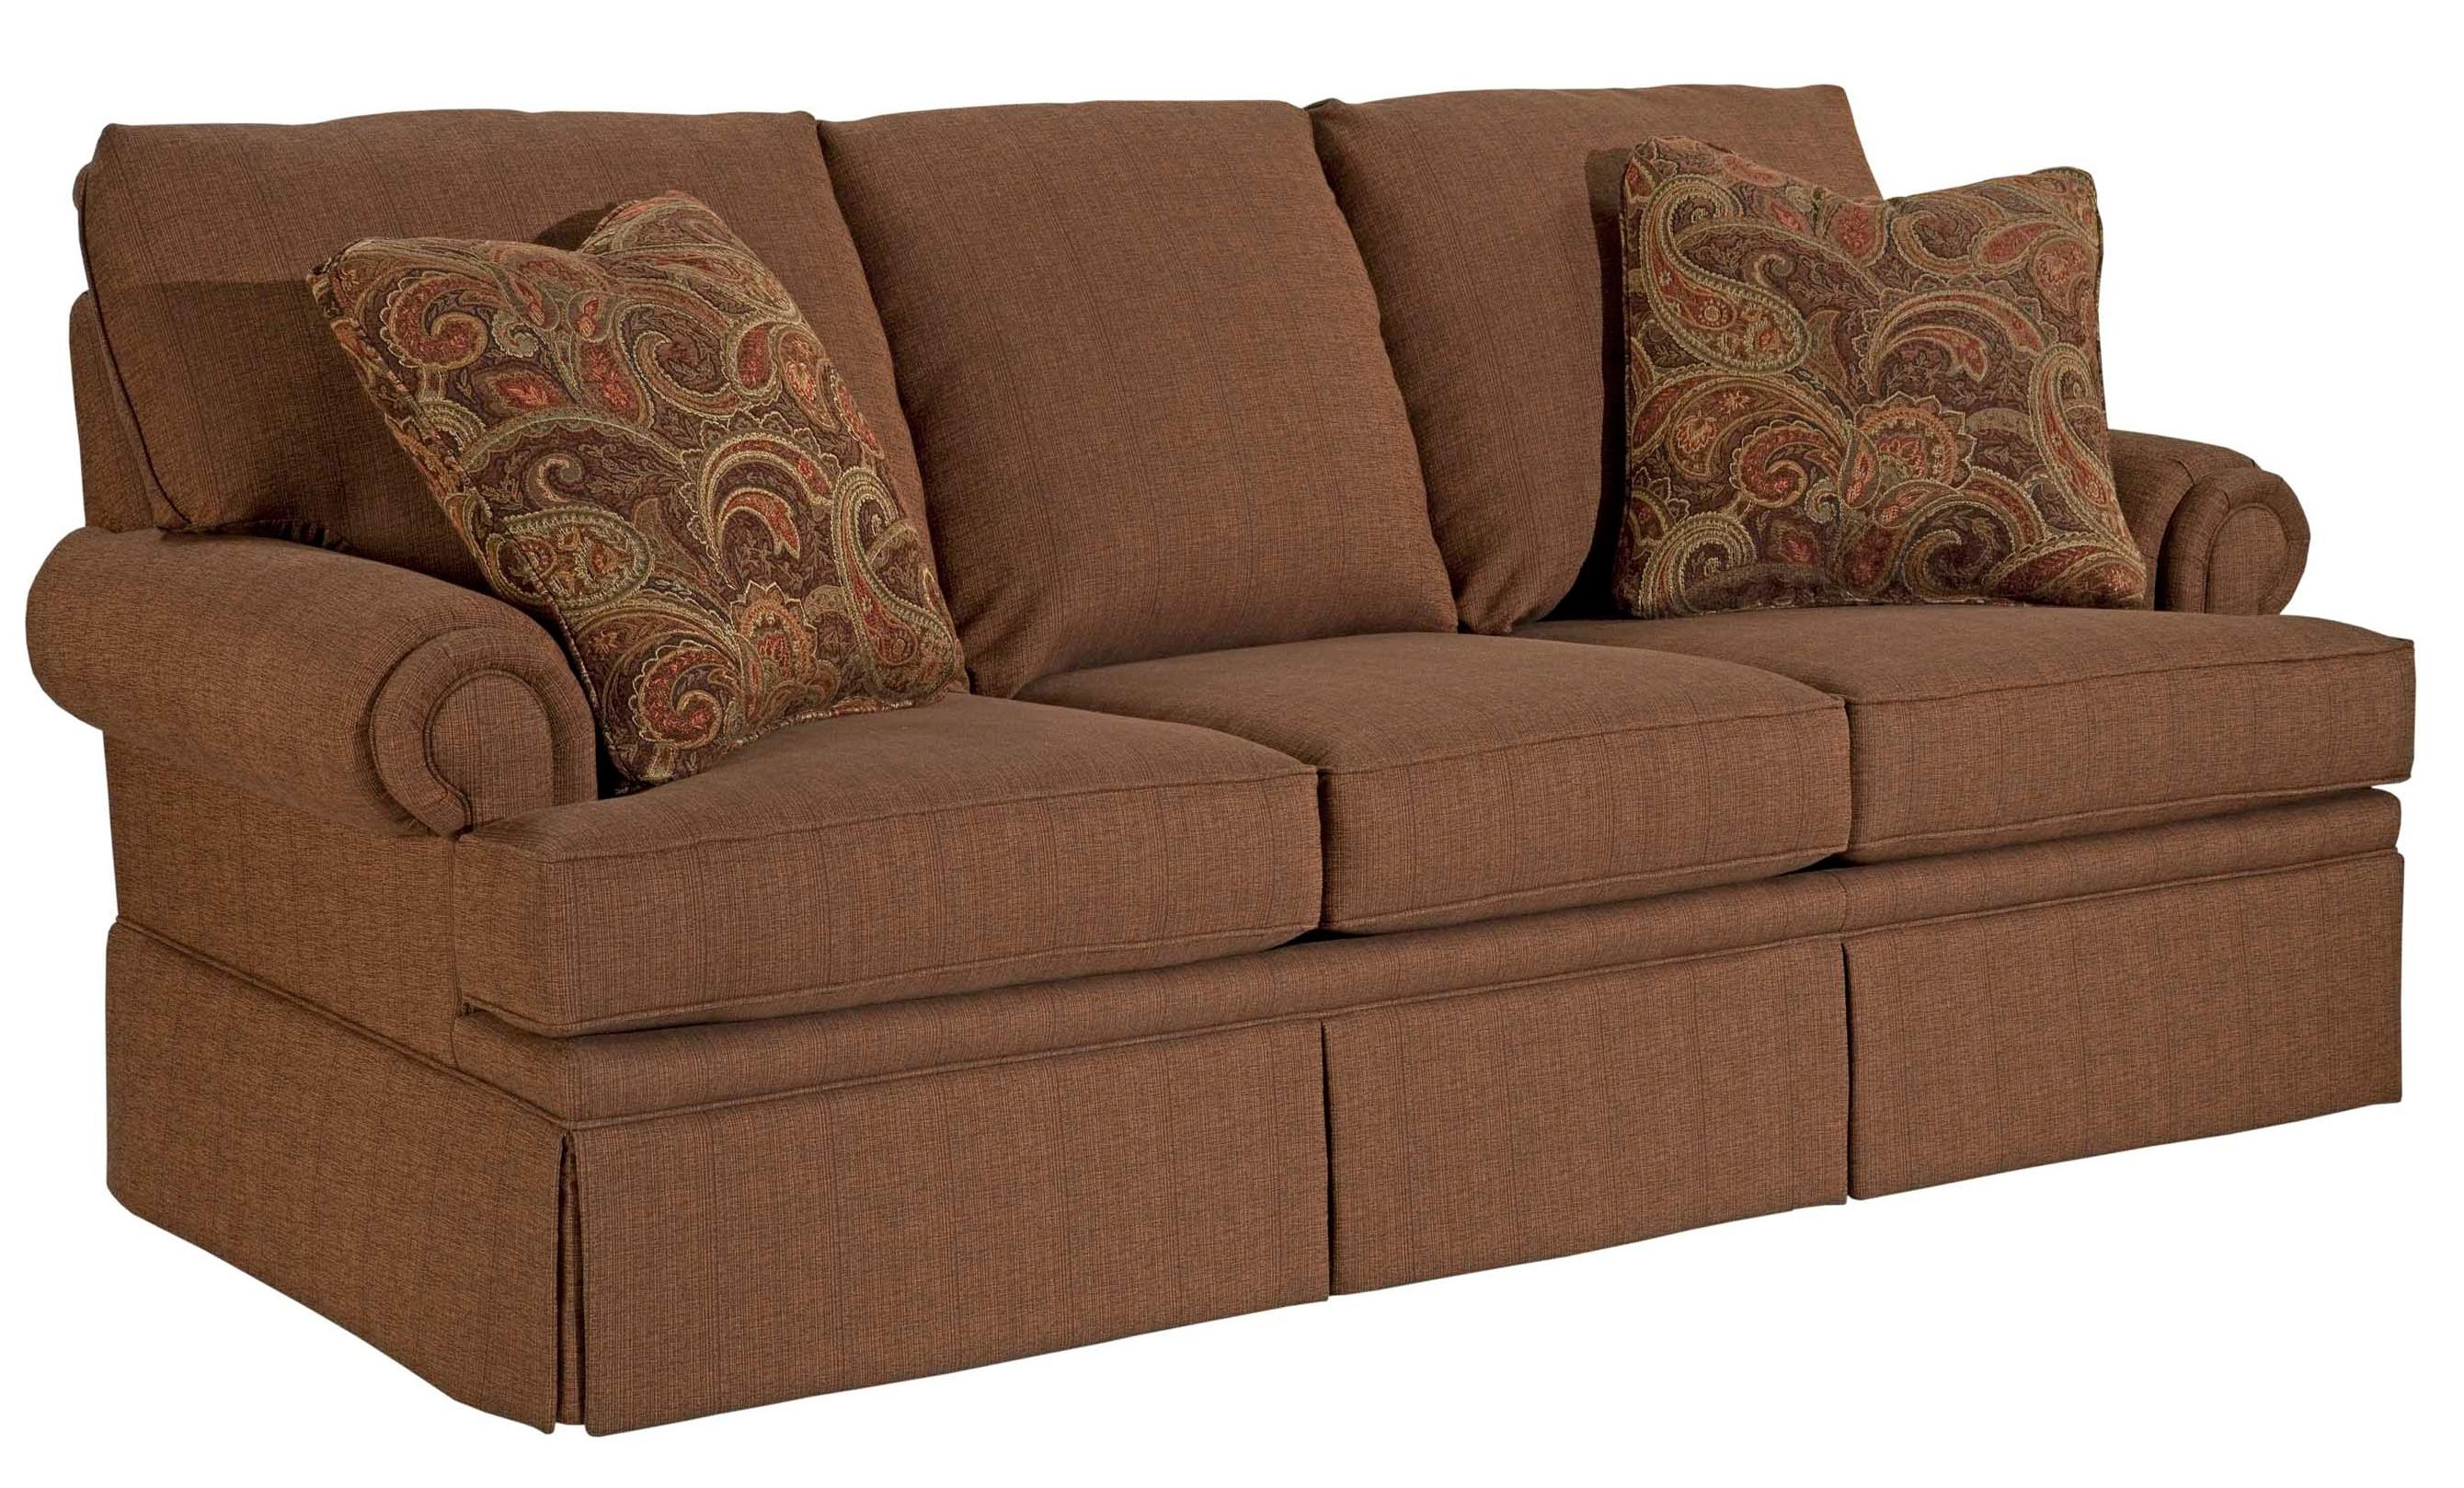 Broyhill furniture jenna 4342 2 78 stationary sofa with for Broyhill chaise lounge cushions